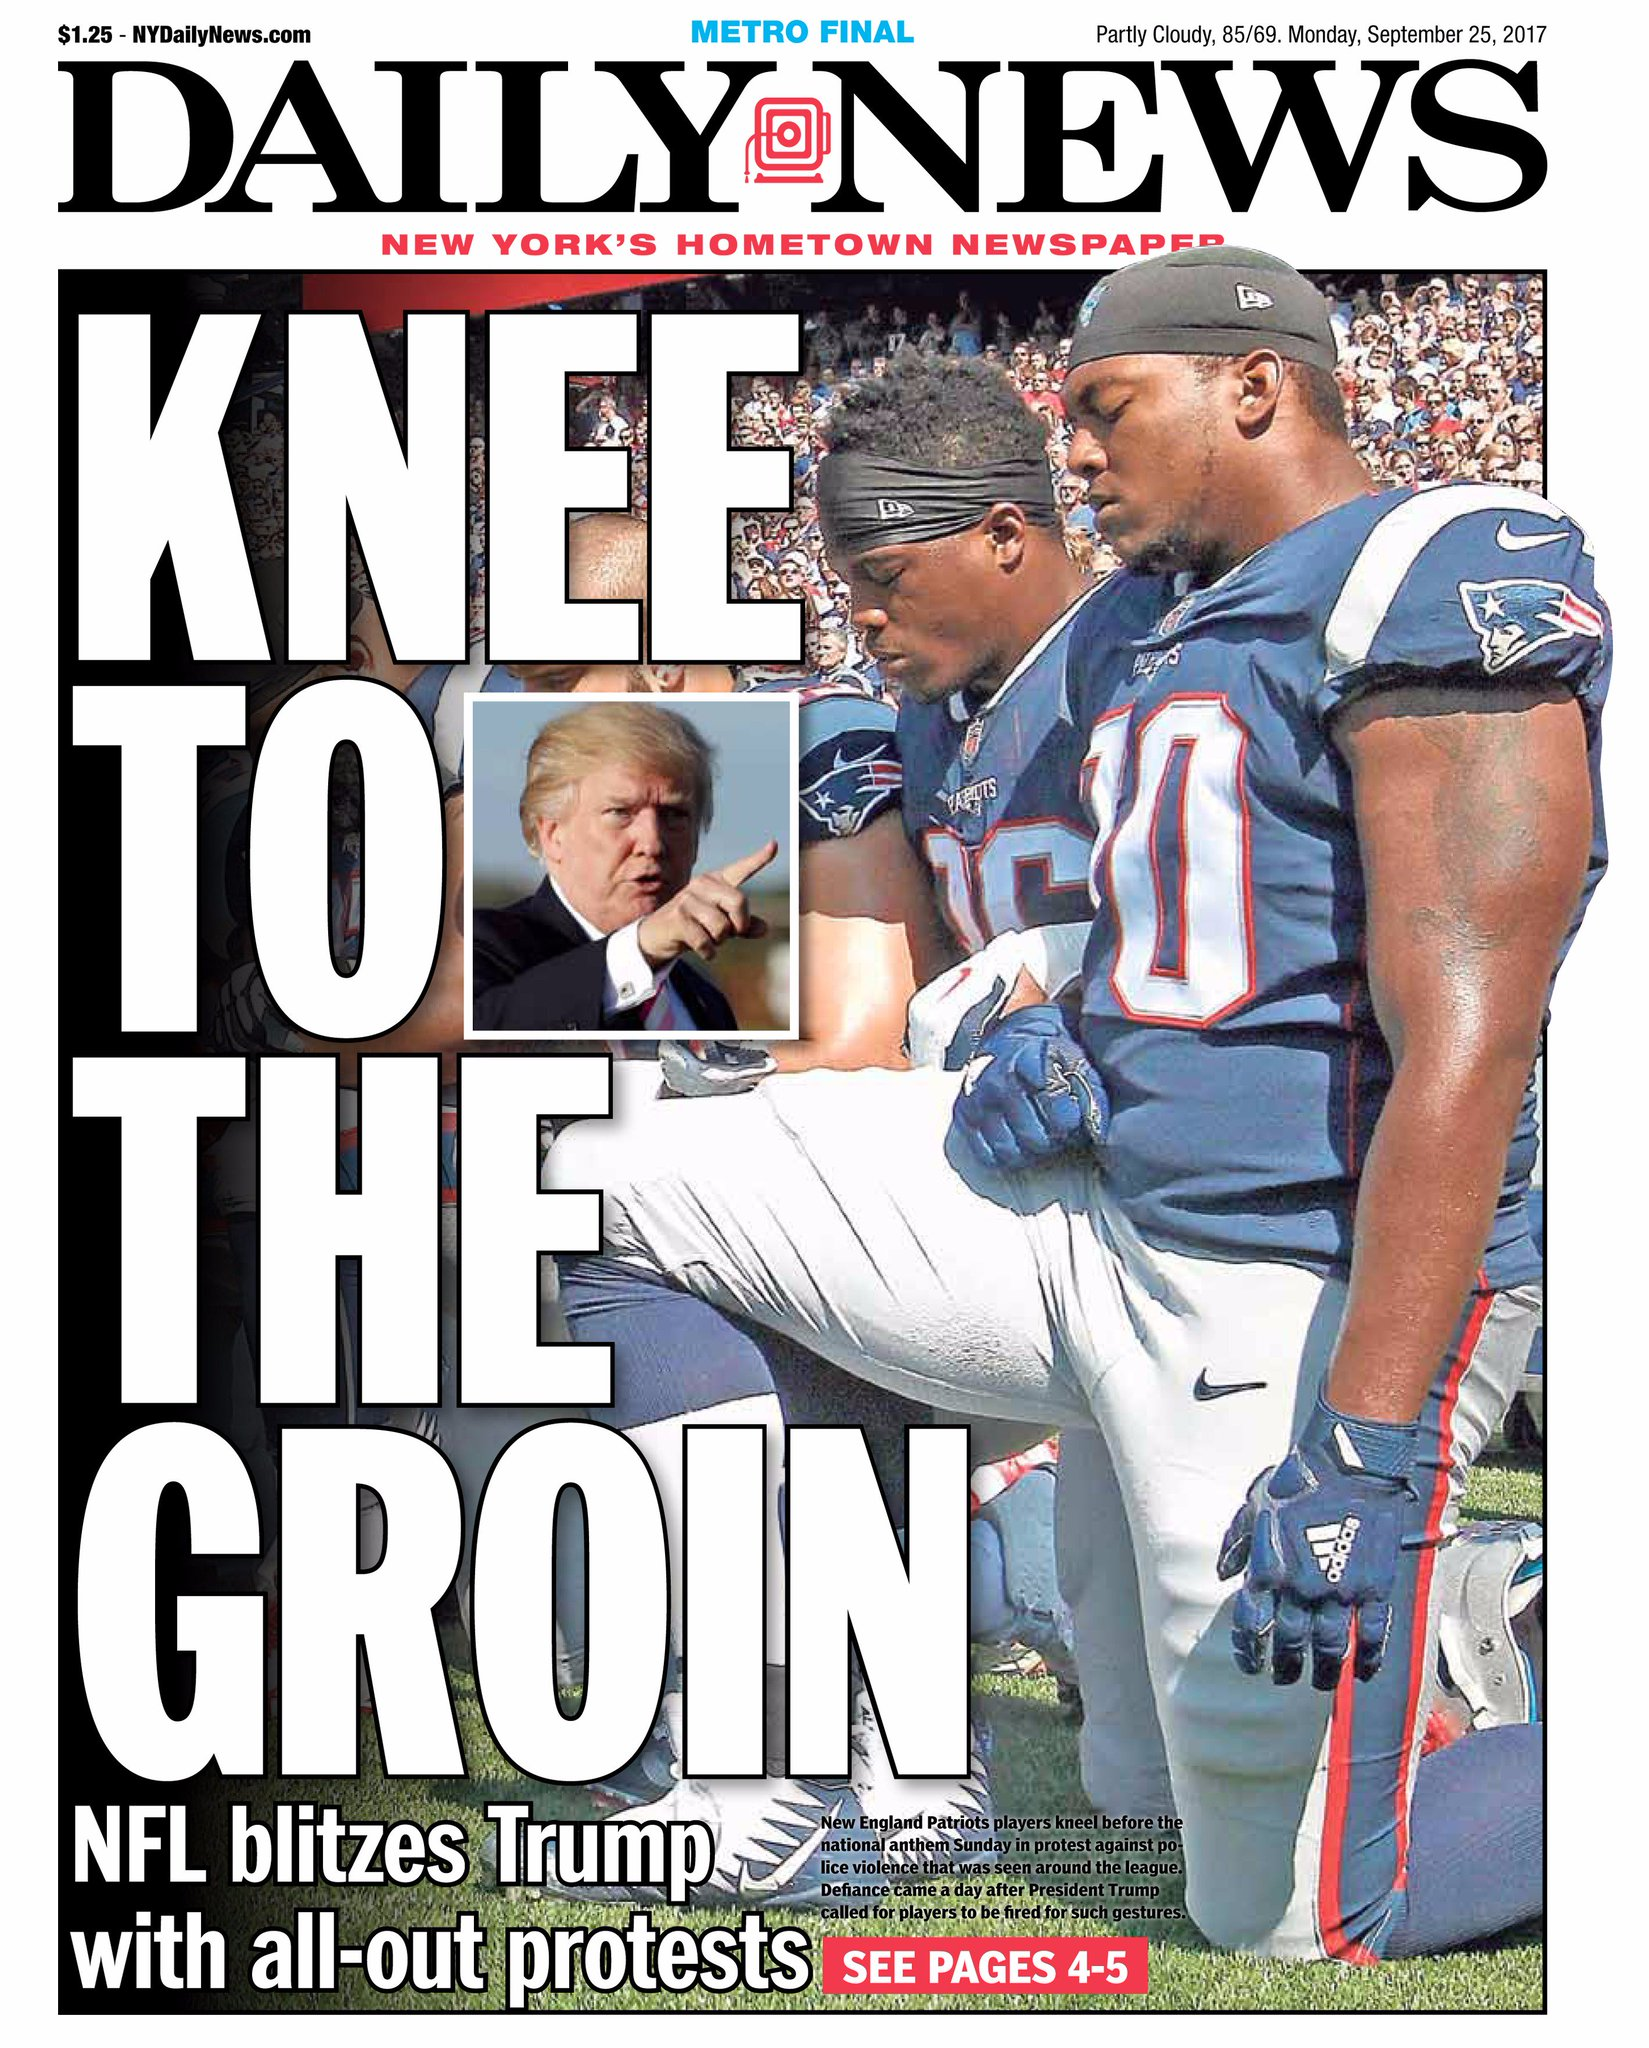 Kneel before Don! #TakeTheKnee  An early look at Monday's front page: https://t.co/lRb4BqRZOX https://t.co/adkcGlx48h